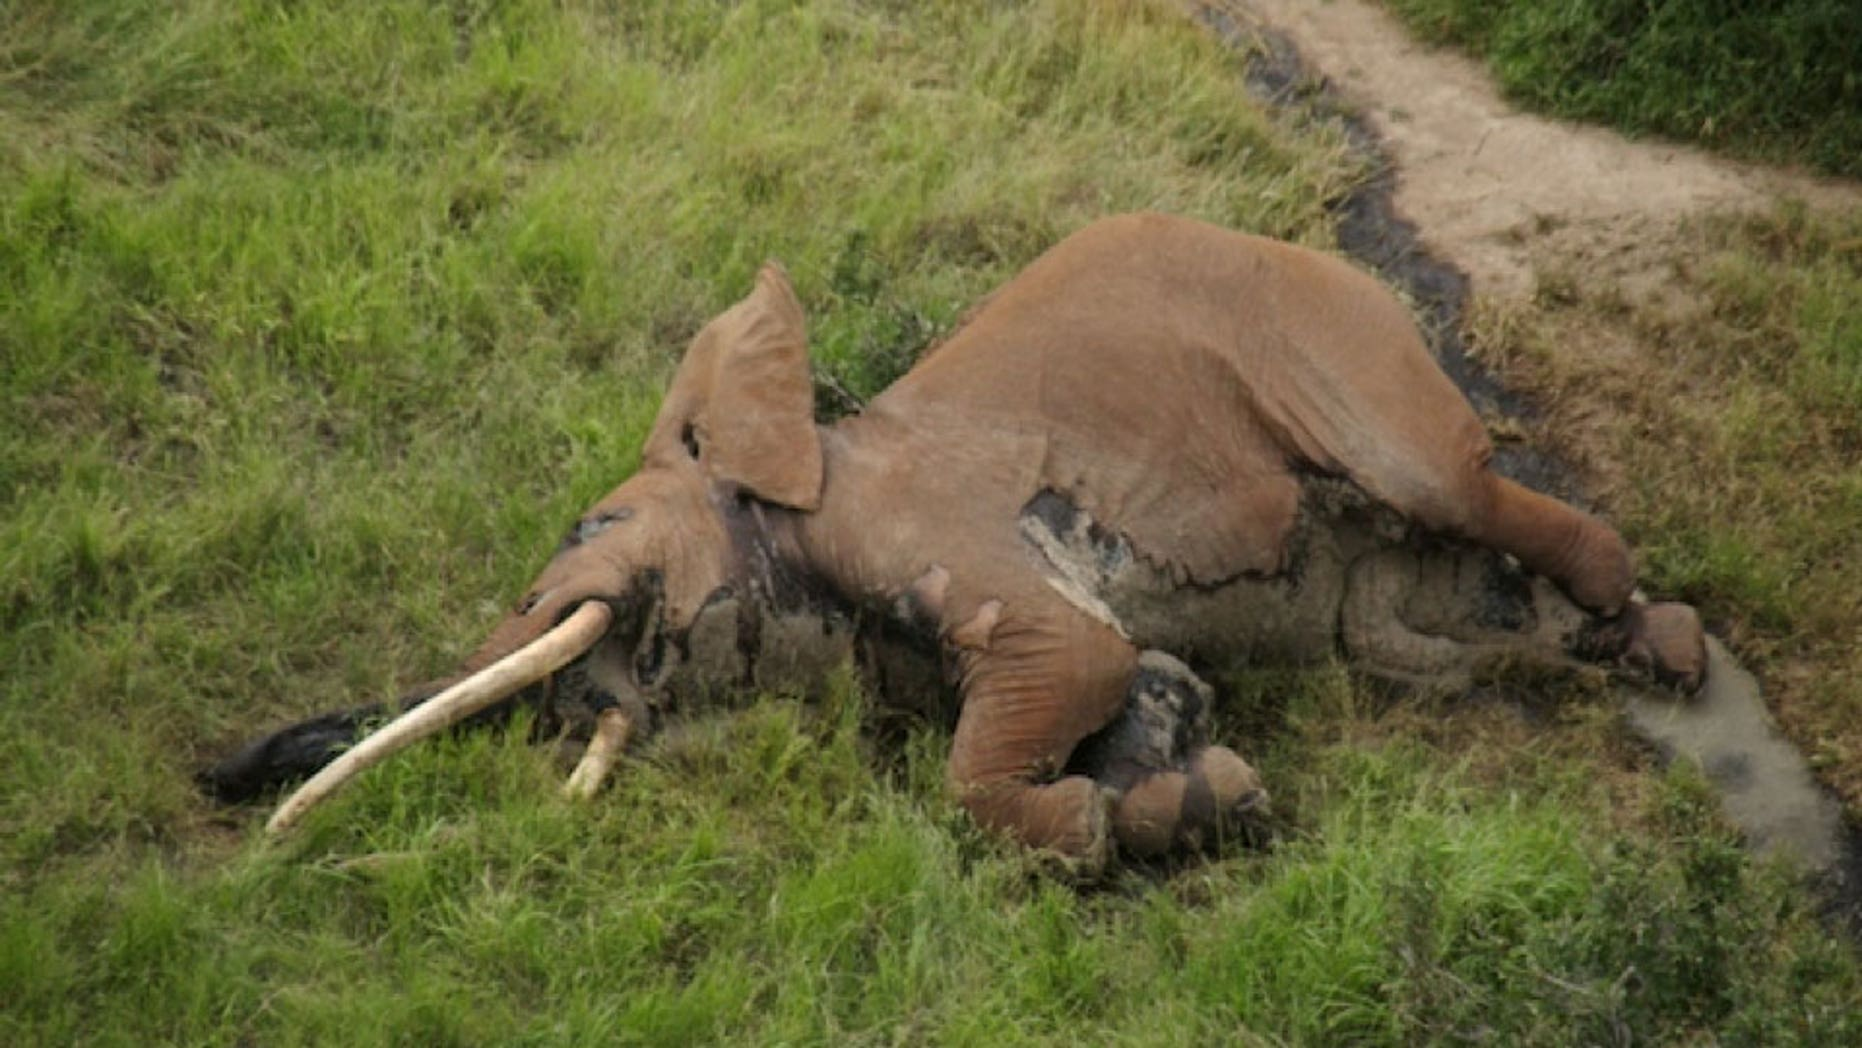 Satao II, a 'giant tusker' elephant was killed by poachers in Kenya, leaving 25 left in the wild.